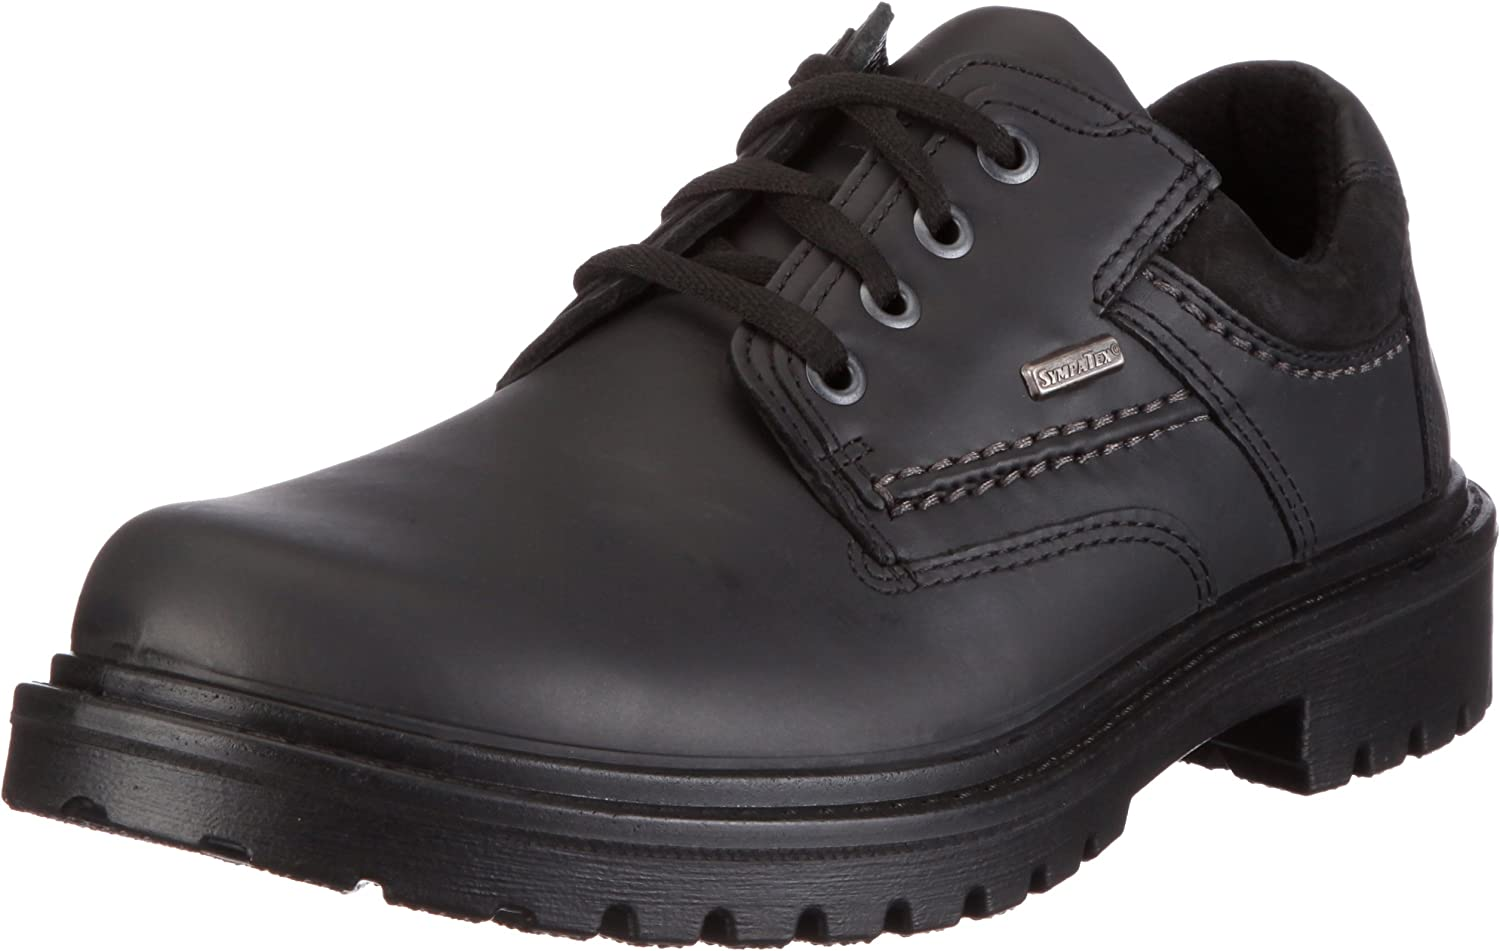 Jomos Alpina 1, Men's Lace-Up